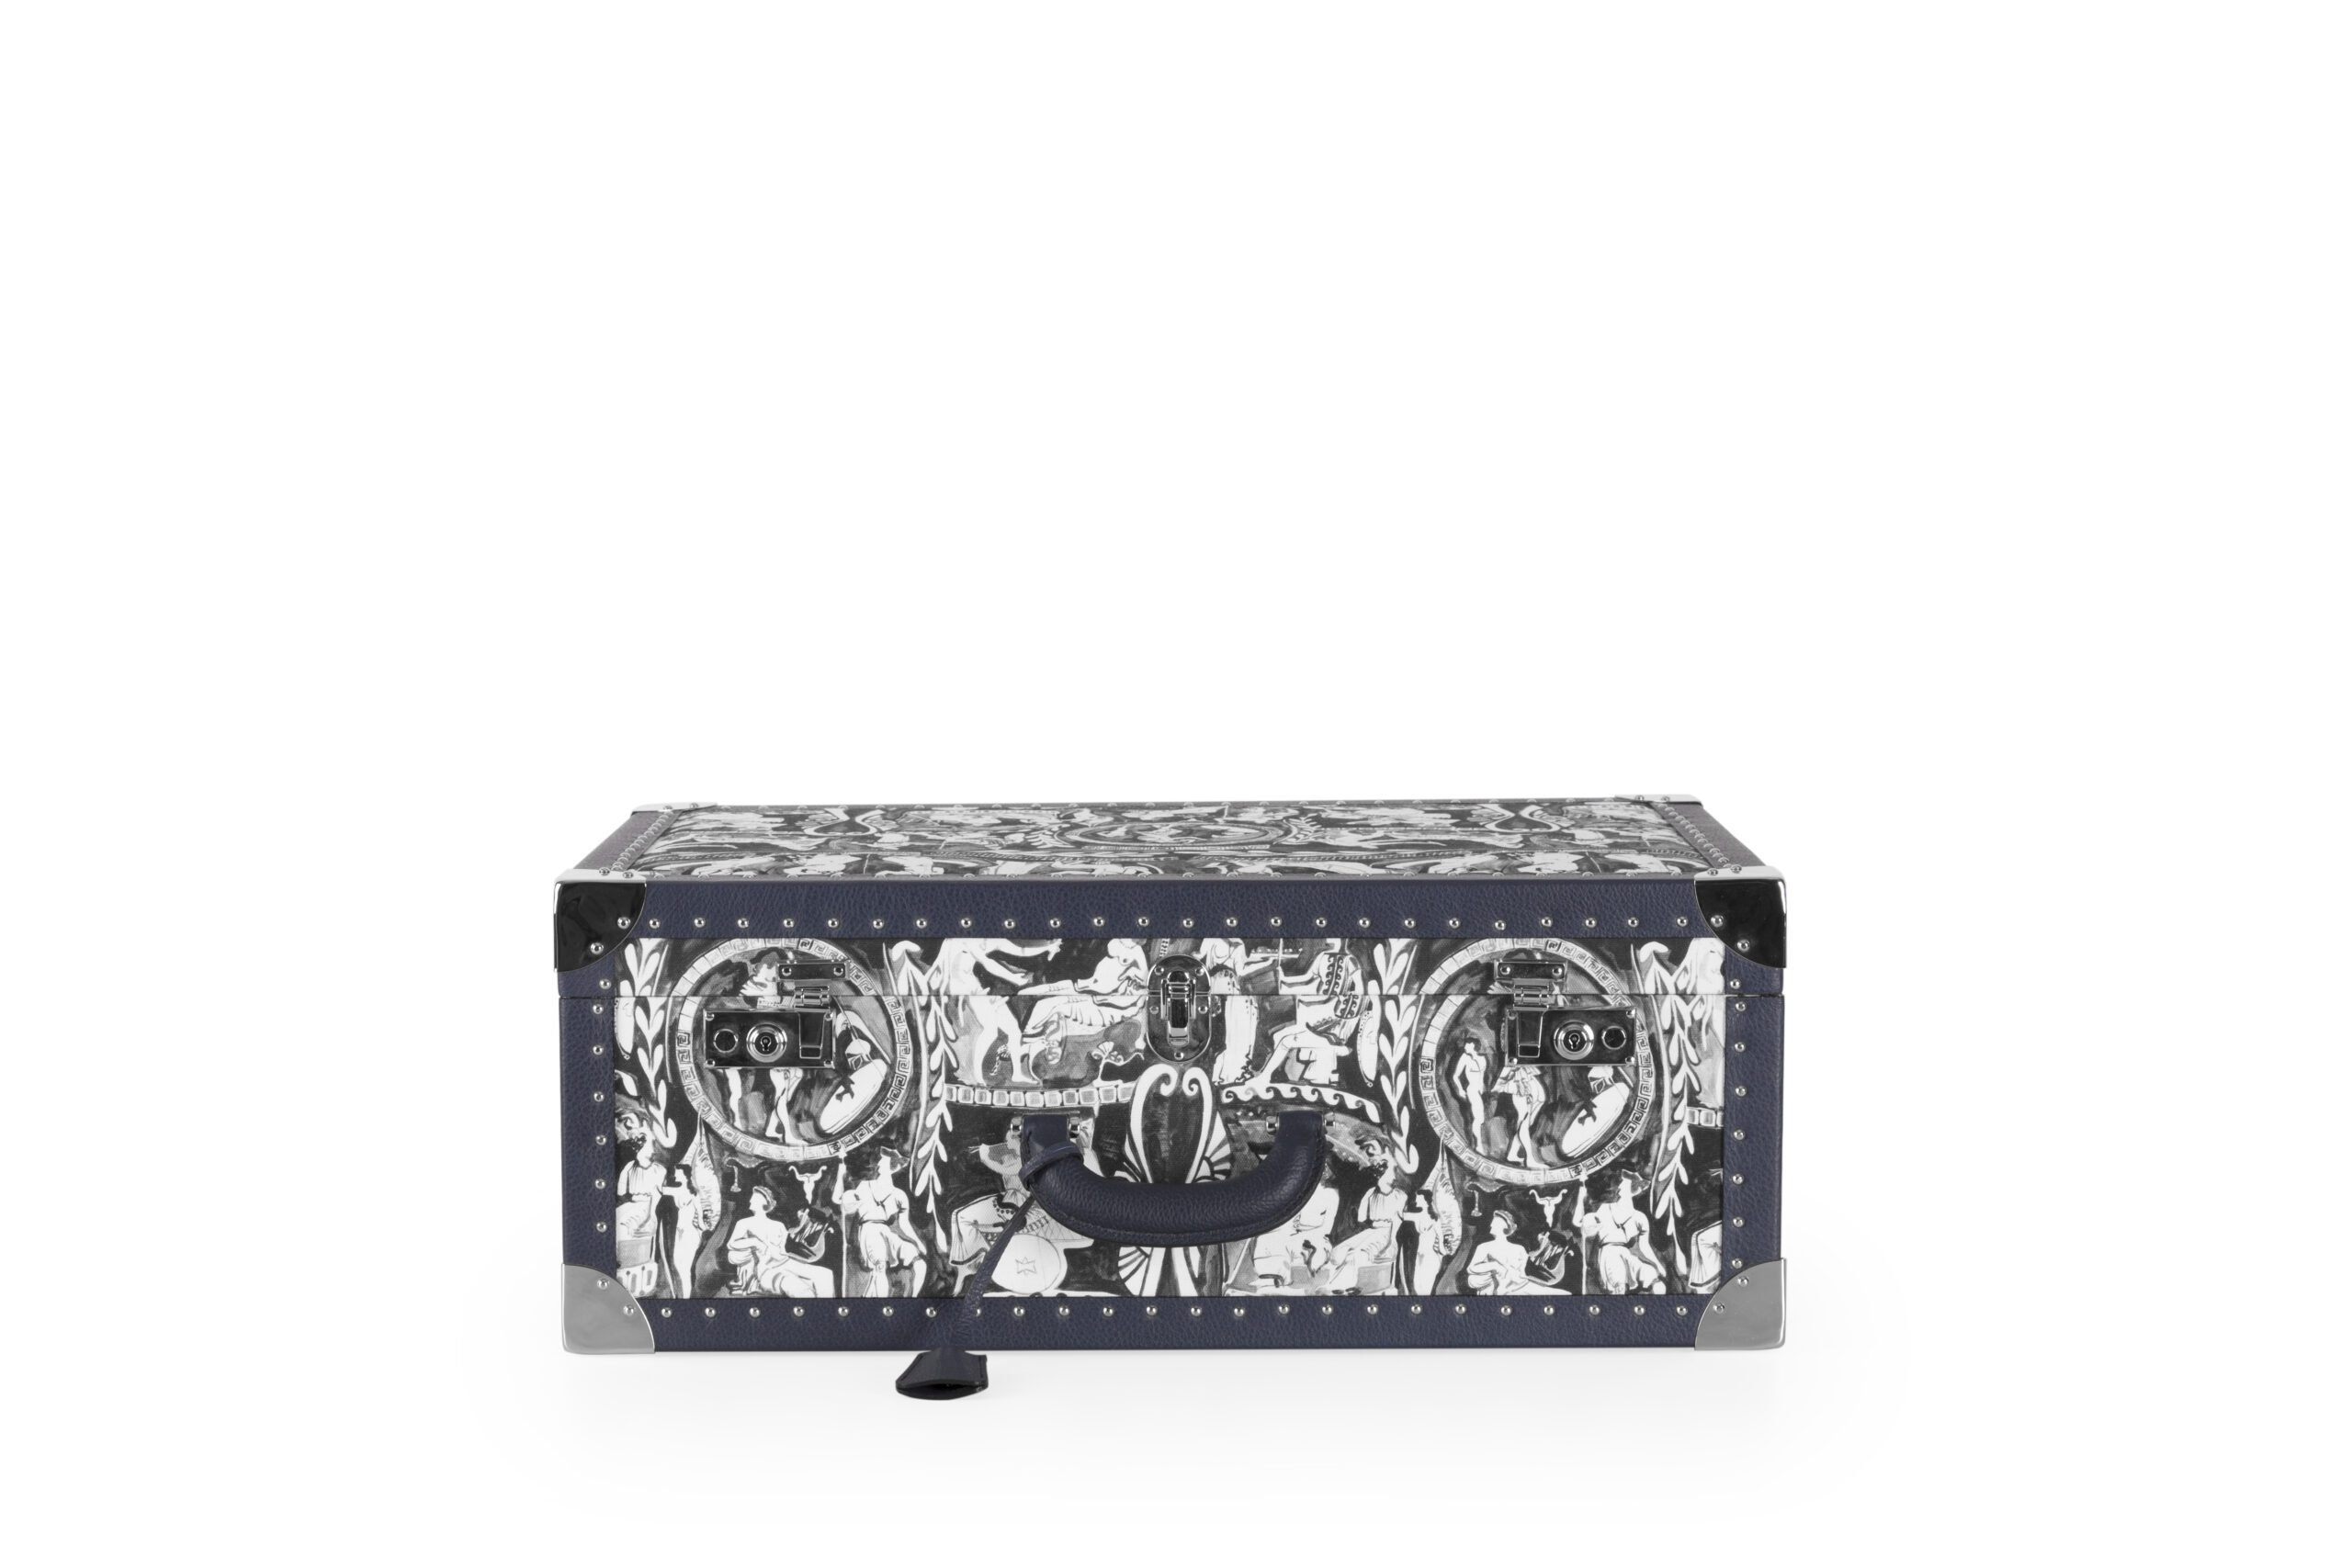 Grecian Urns Trunk Voutsa travel luggage italy dwell in the pursuit